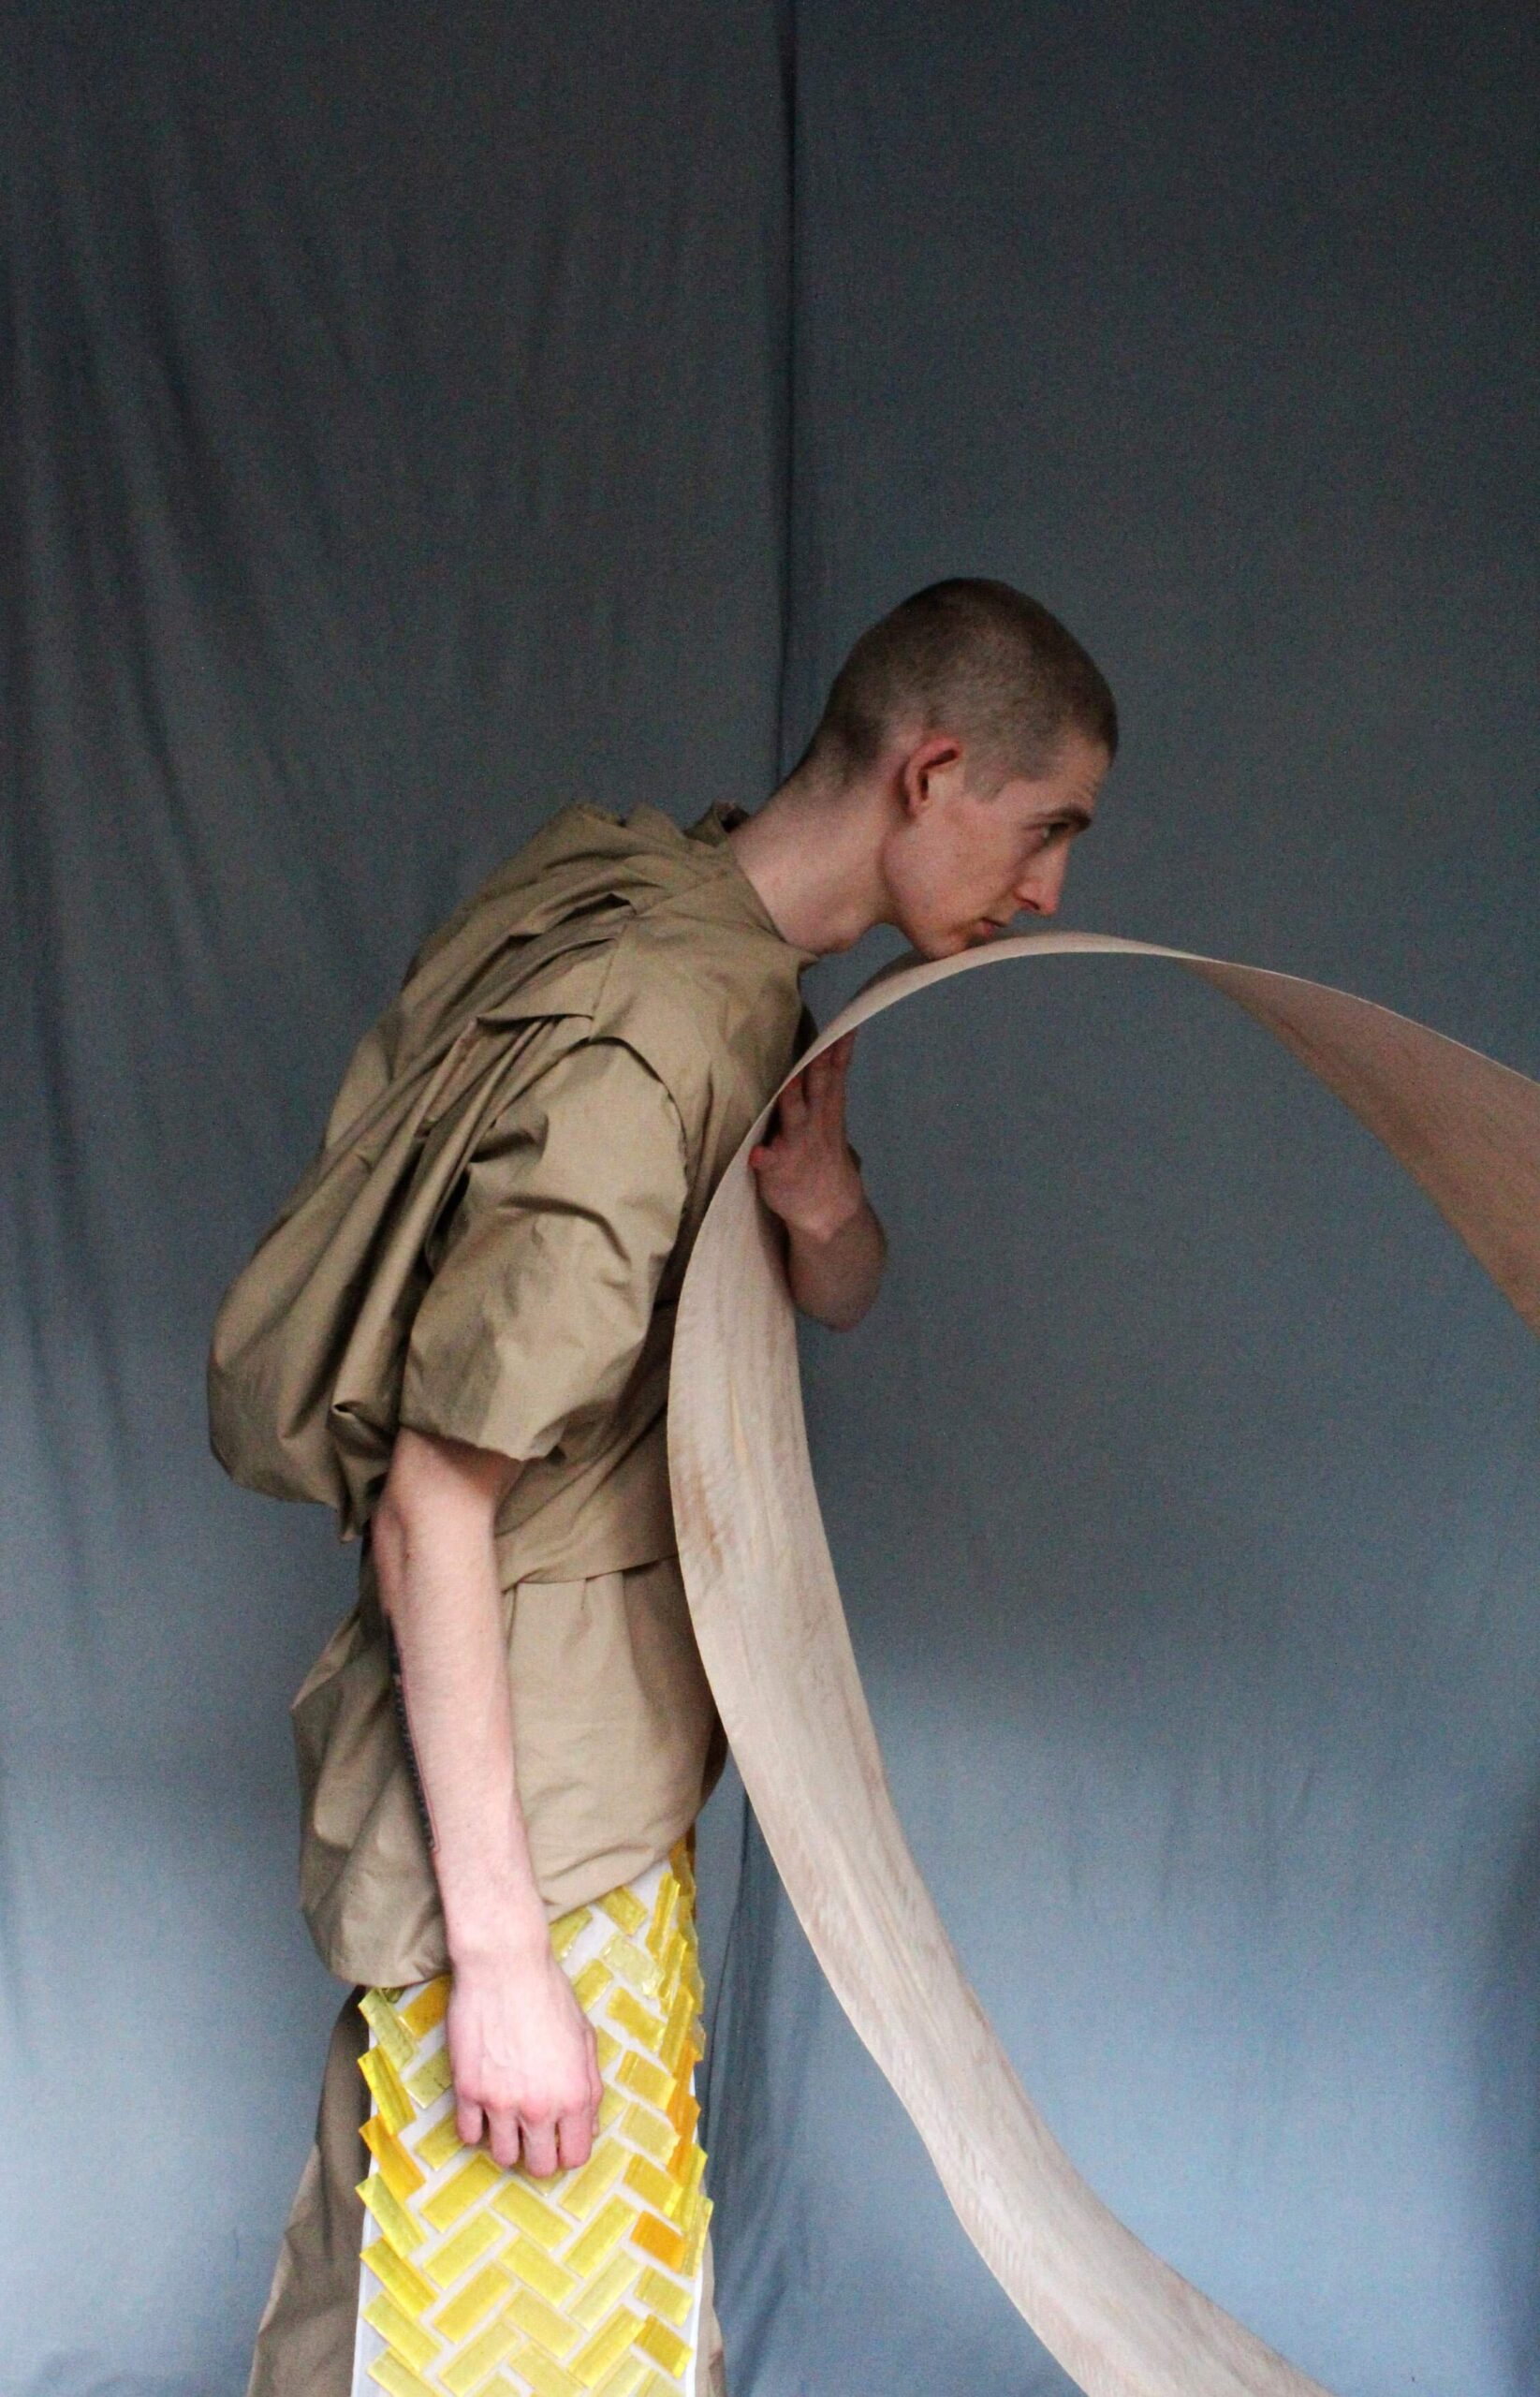 Shanti Bell: Representing the Weight of Masculinity